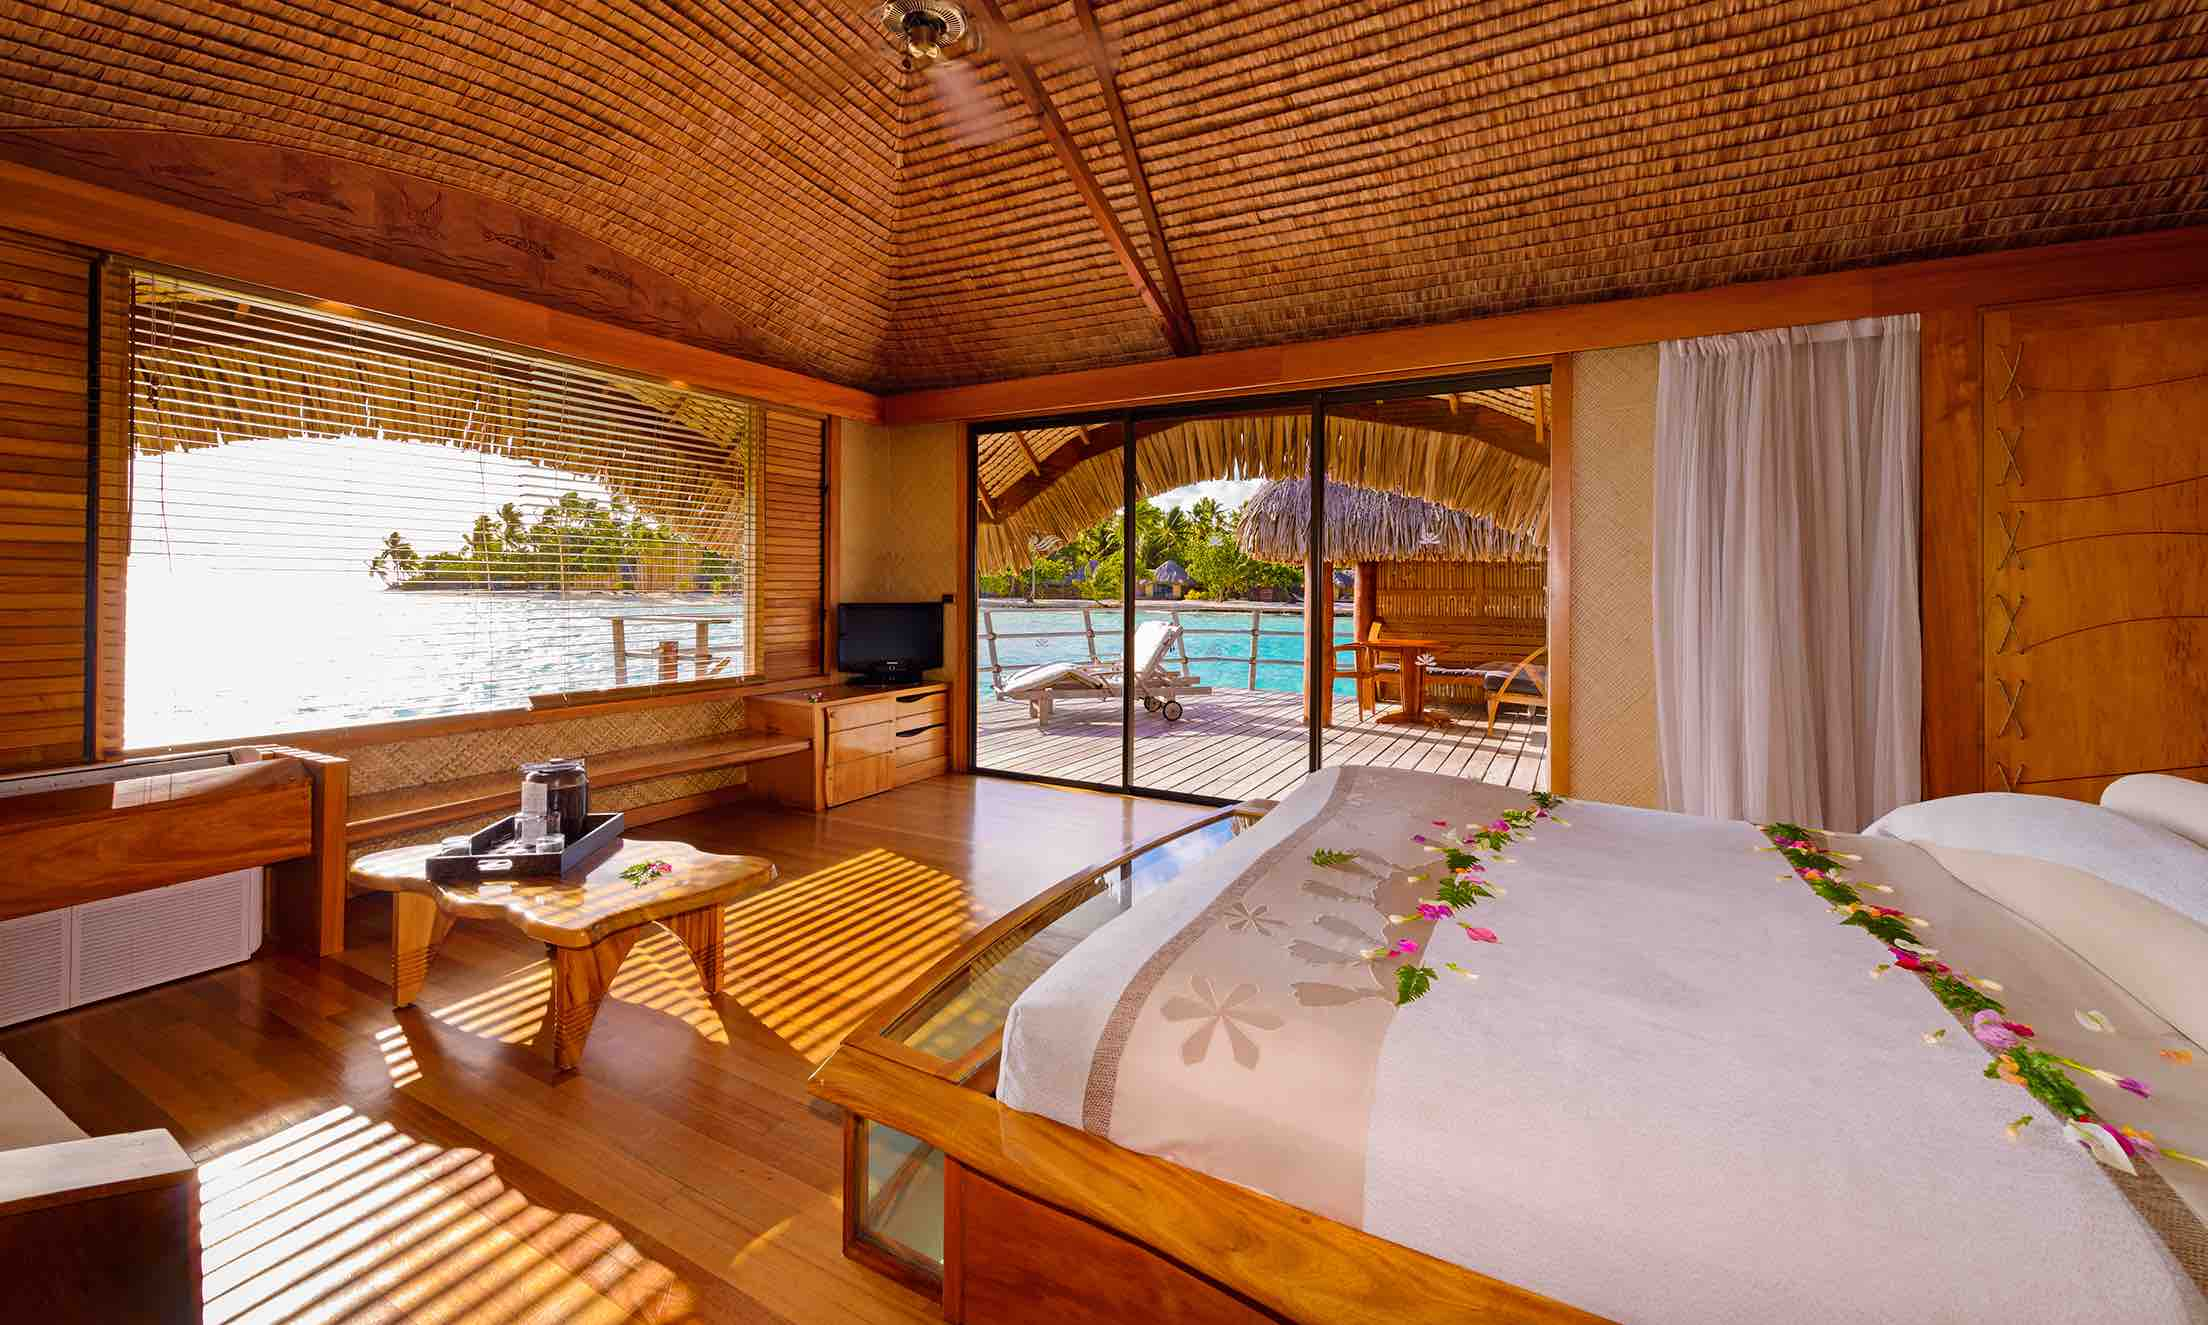 https://tahititourisme.fr/wp-content/uploads/2019/07/monplusbeauvoyage-tahaa-Island-Resort-chambre.jpg